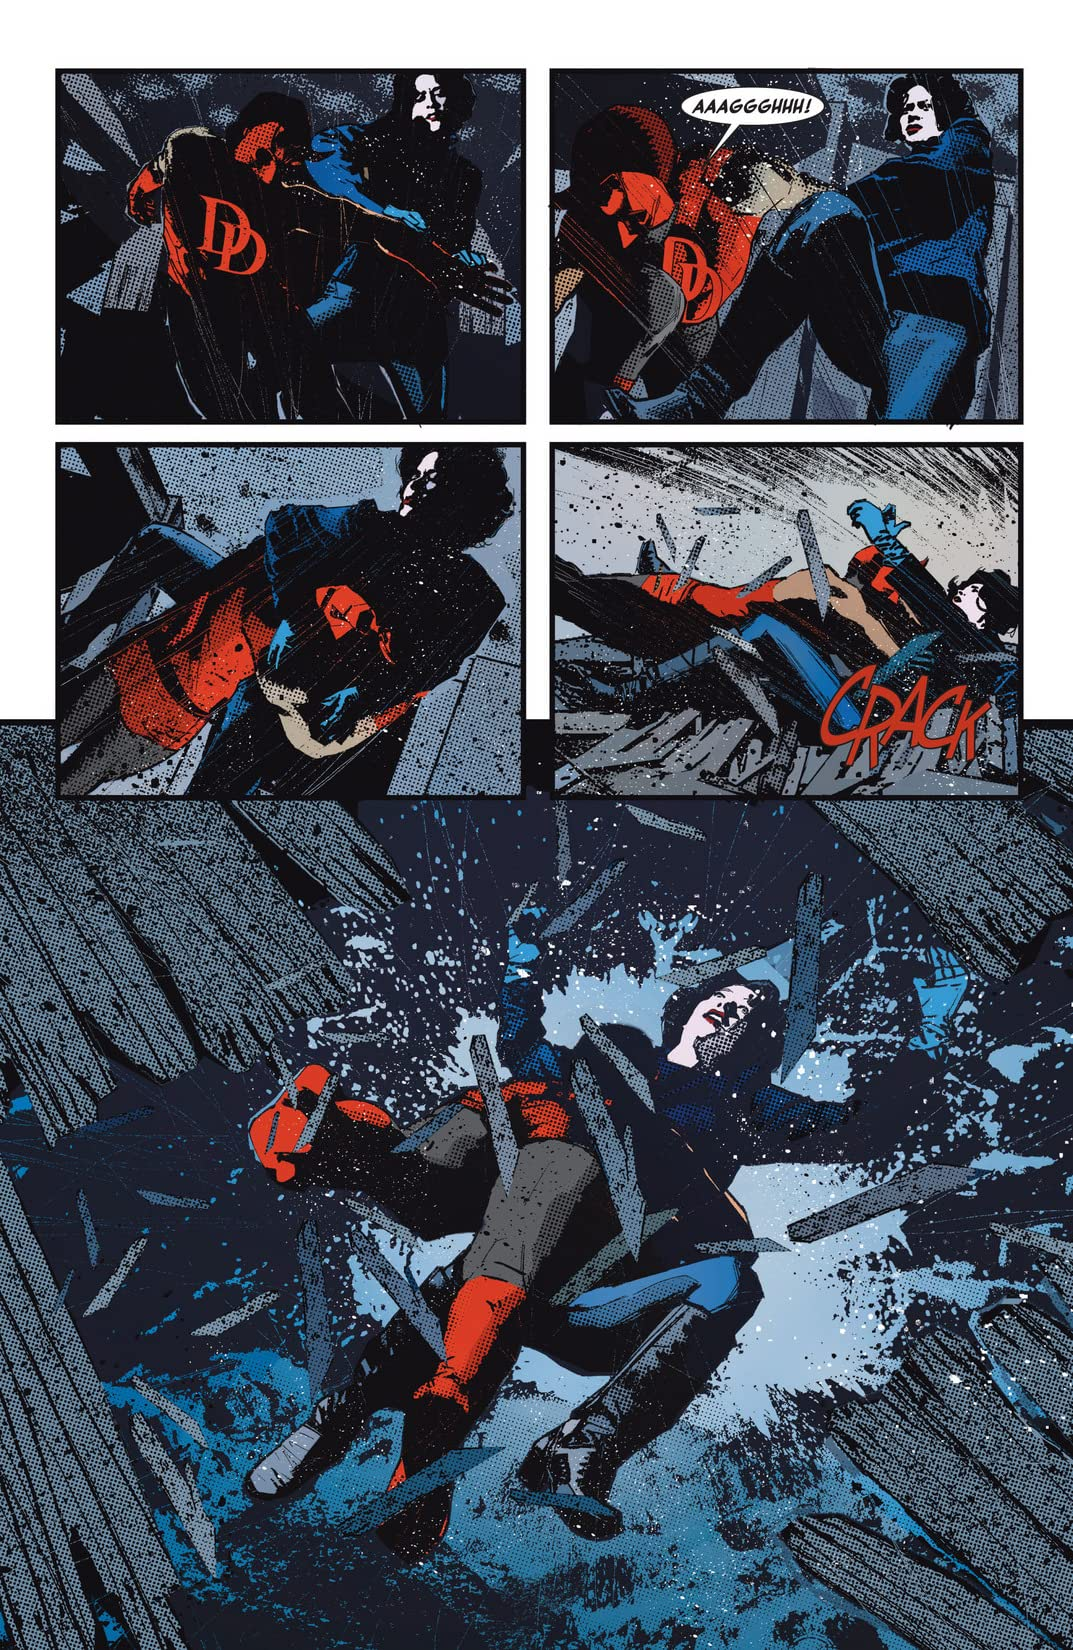 Daredevil Noir #4 (of 4)